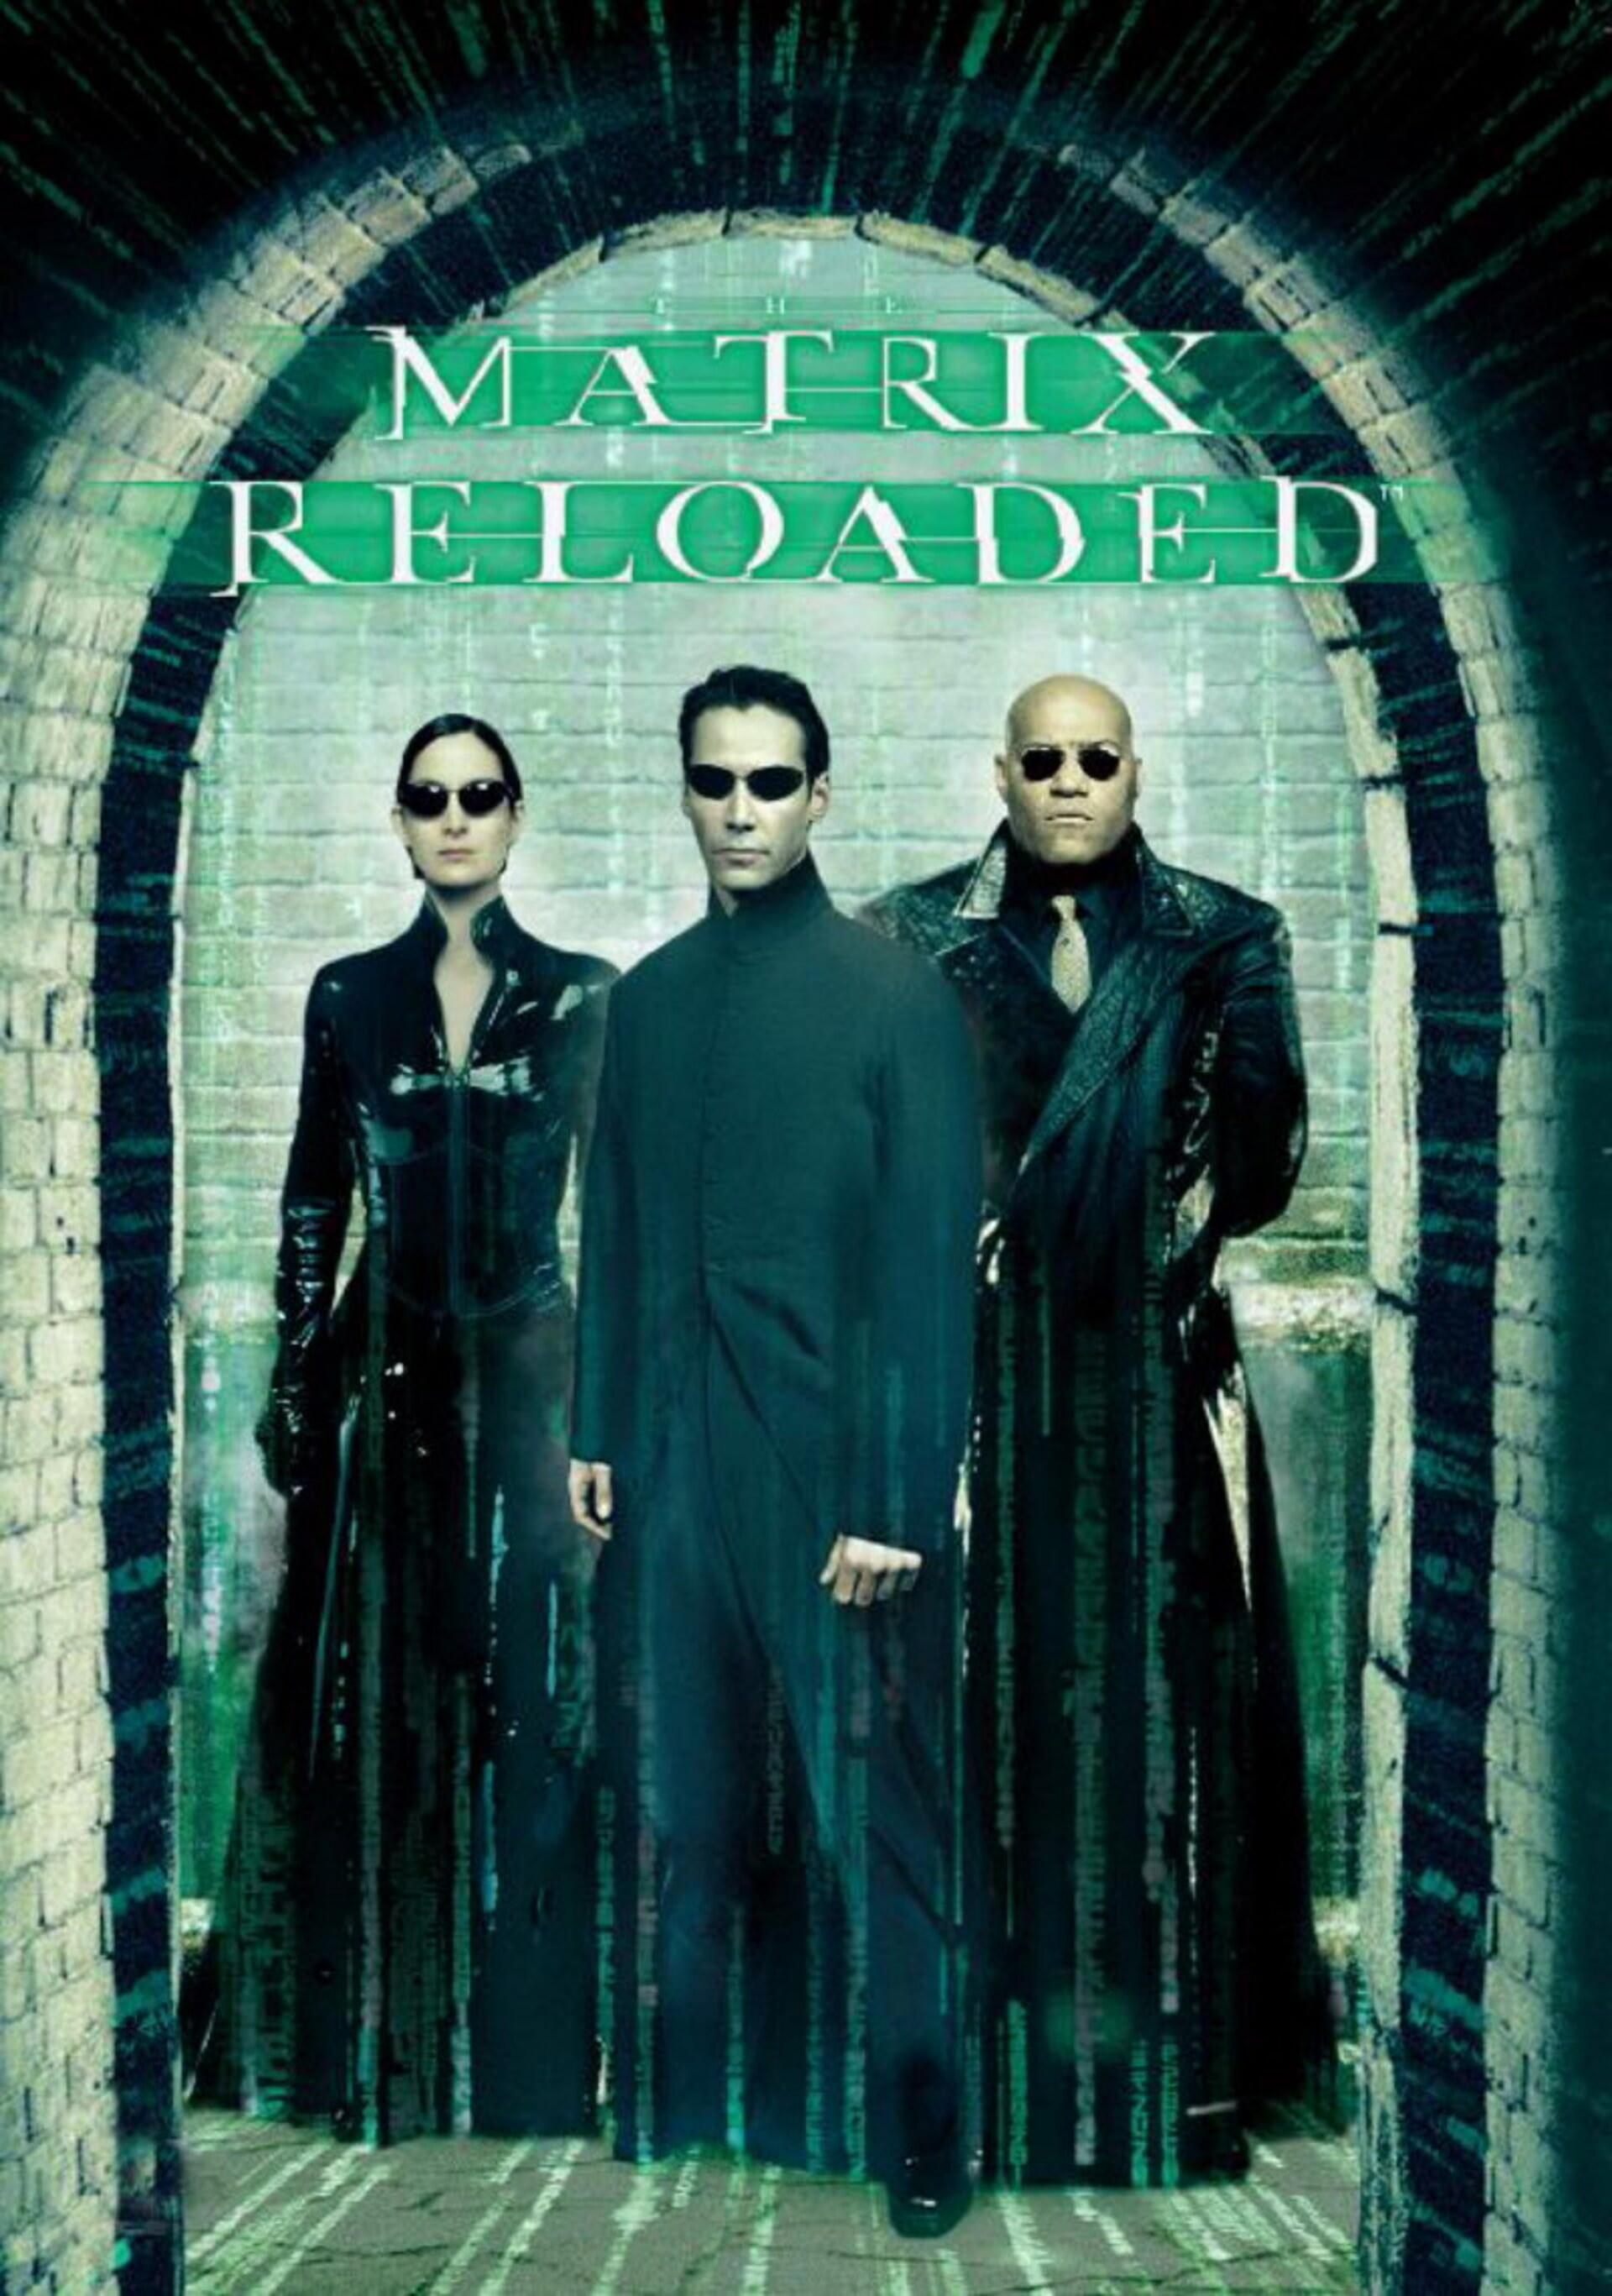 The Matrix Reloaded - Poster 1